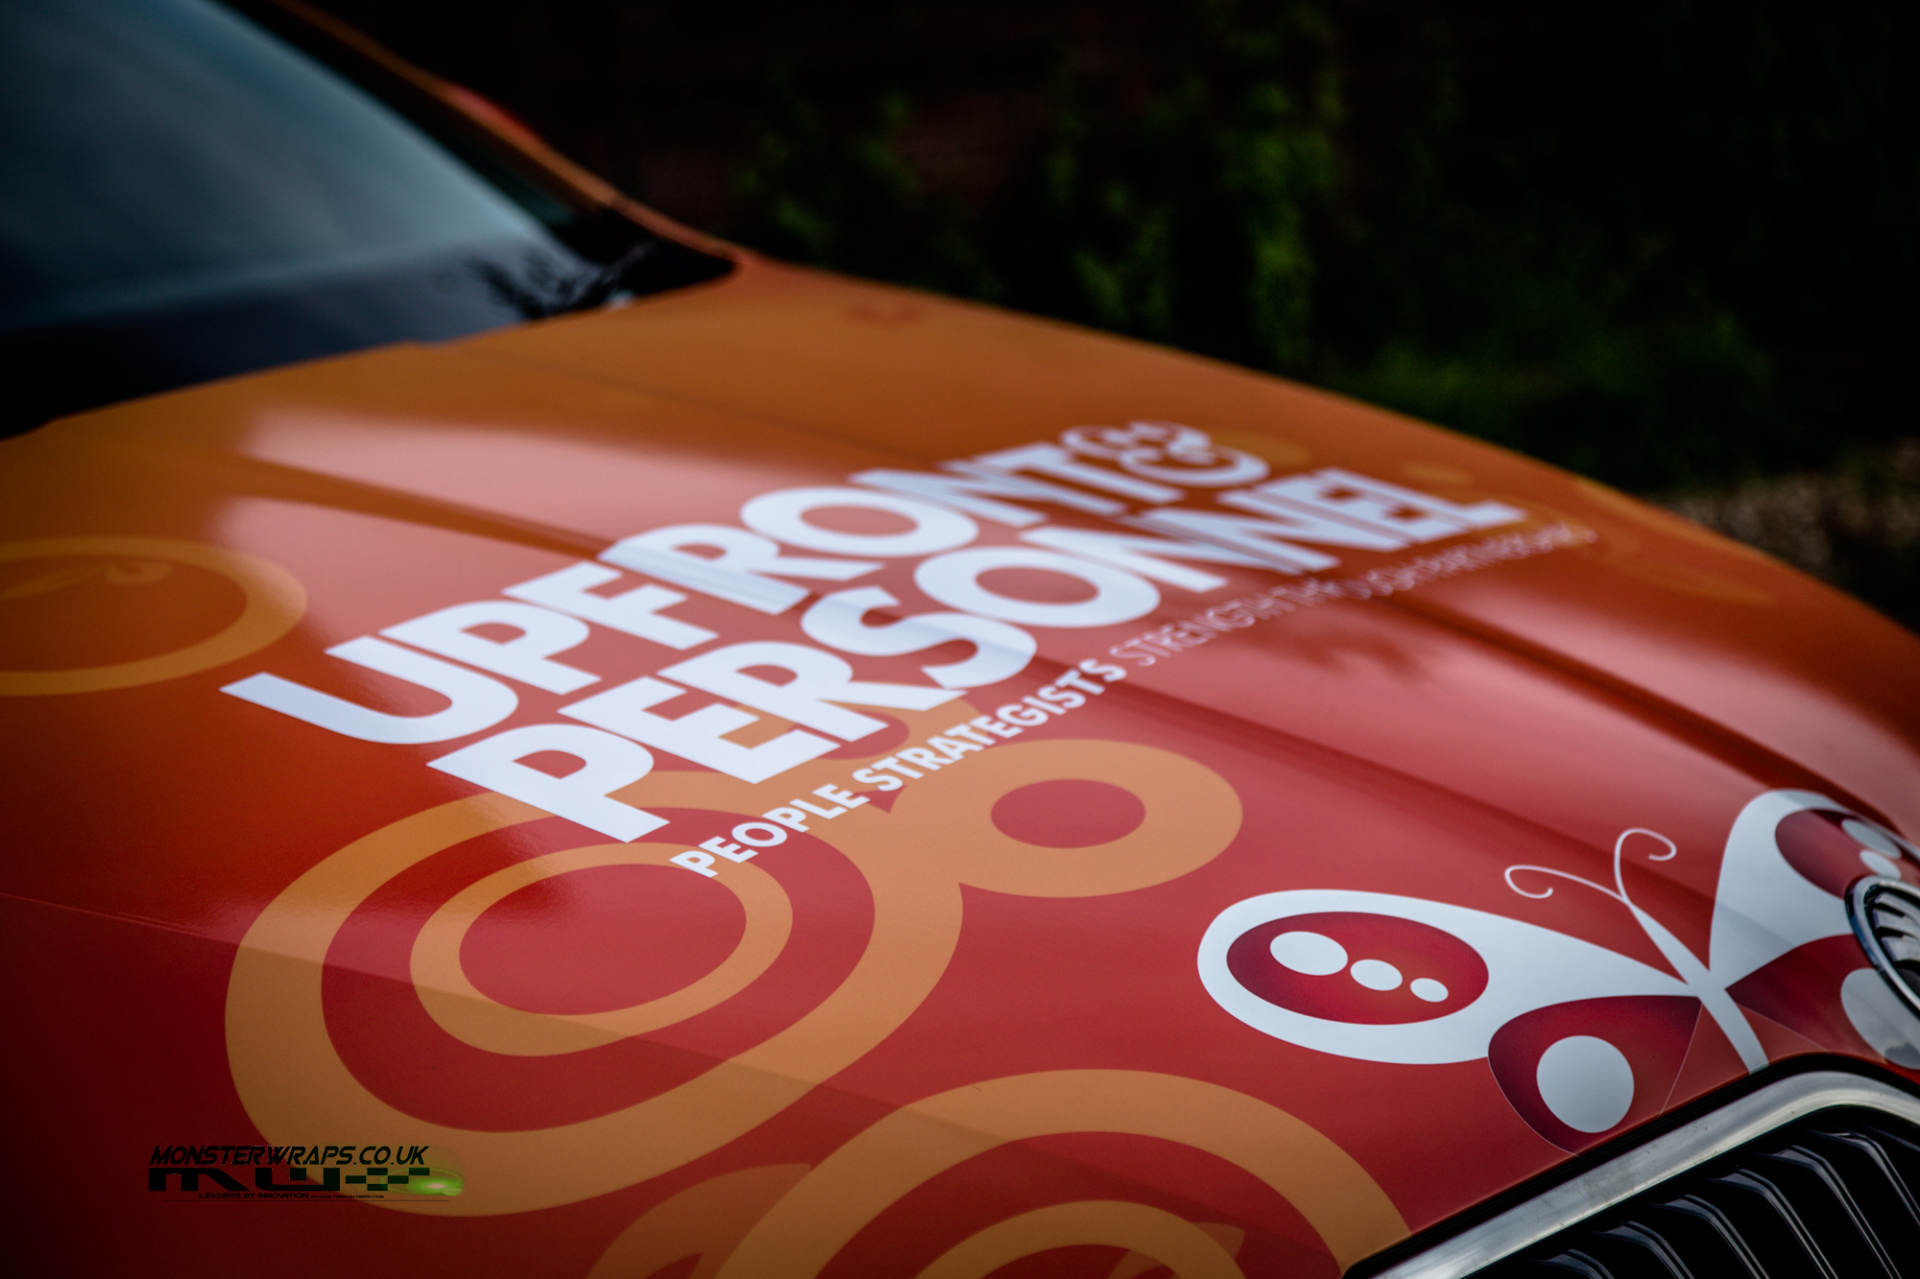 Commercial branding livery printed wrap design southampton 3M car wrap